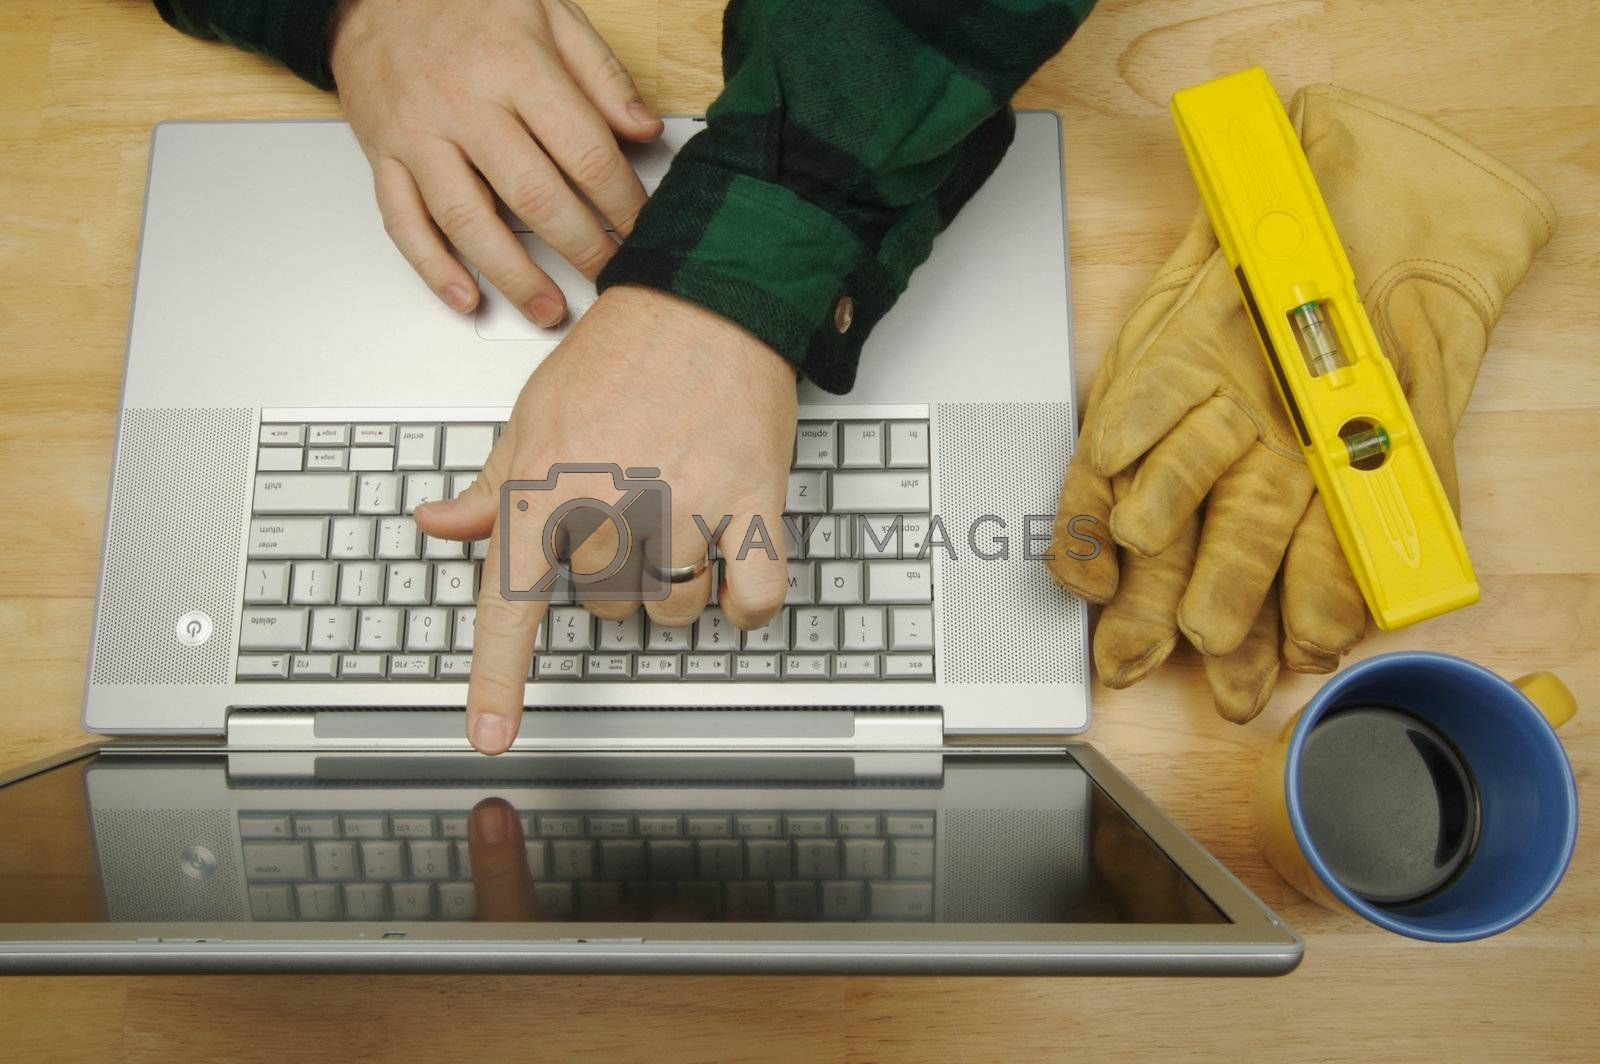 Contractor Points & Reviews Project on Laptop with level, gloves and coffee to his side. Great image for online information regarding home improvement, additions, remodeling or construction.